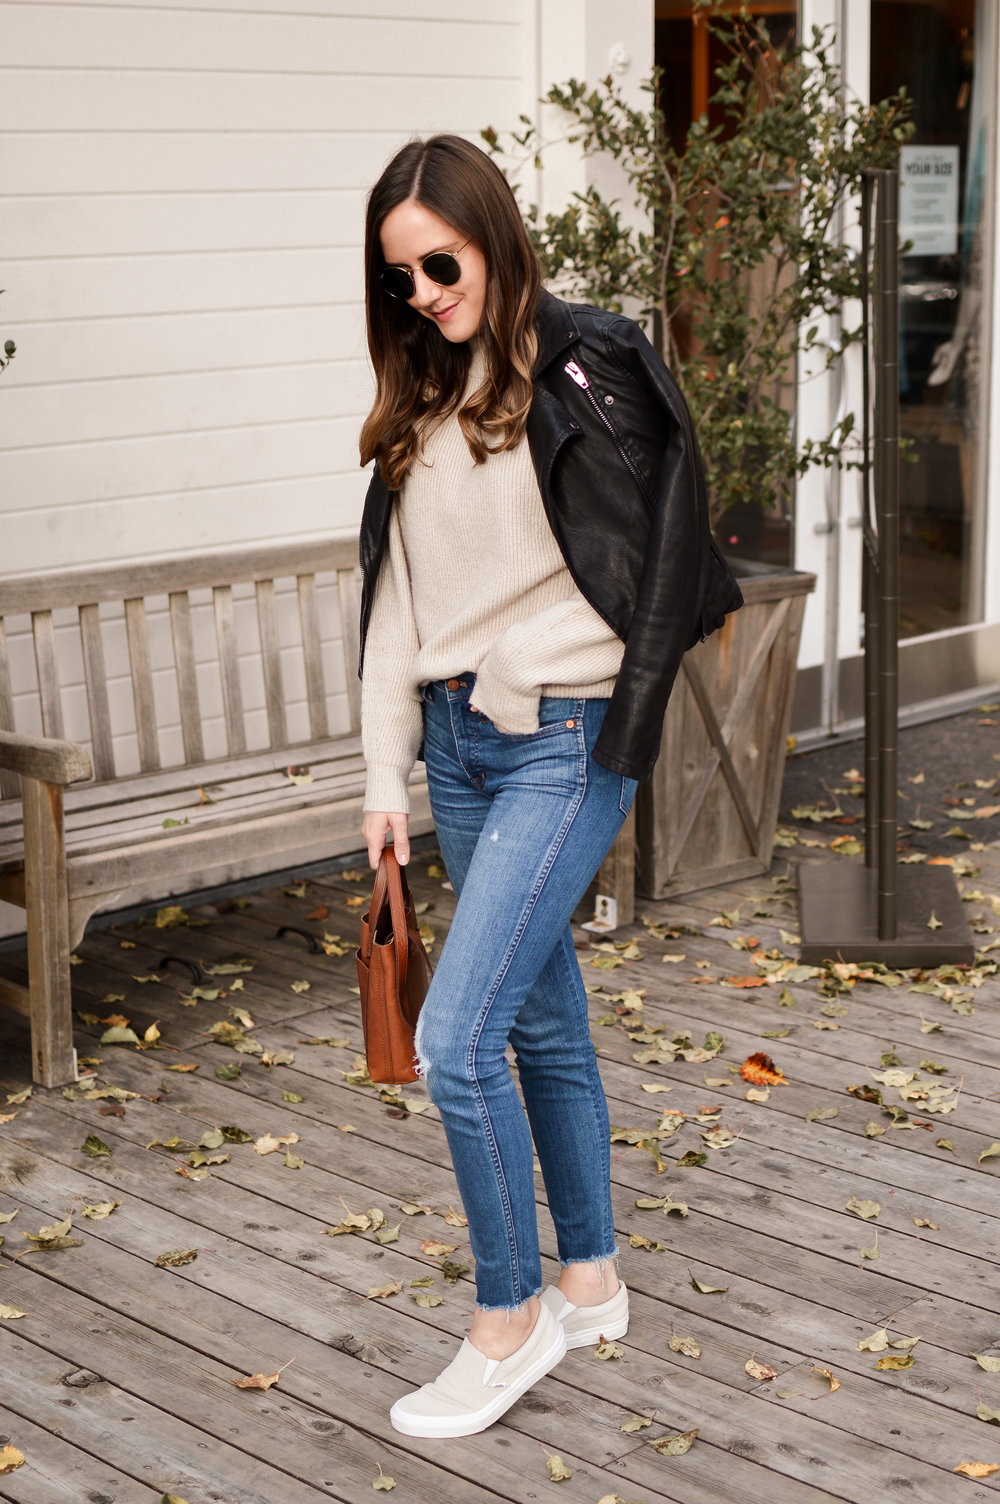 Shop the Look Below.  Nordstrom Sweater  |  Madewell Jeans  |  BlankNYC Jacket  (mine is last year's version) |  Vans Sneakers  |  Madewell Tote  |  Ray-Ban Sunglasses